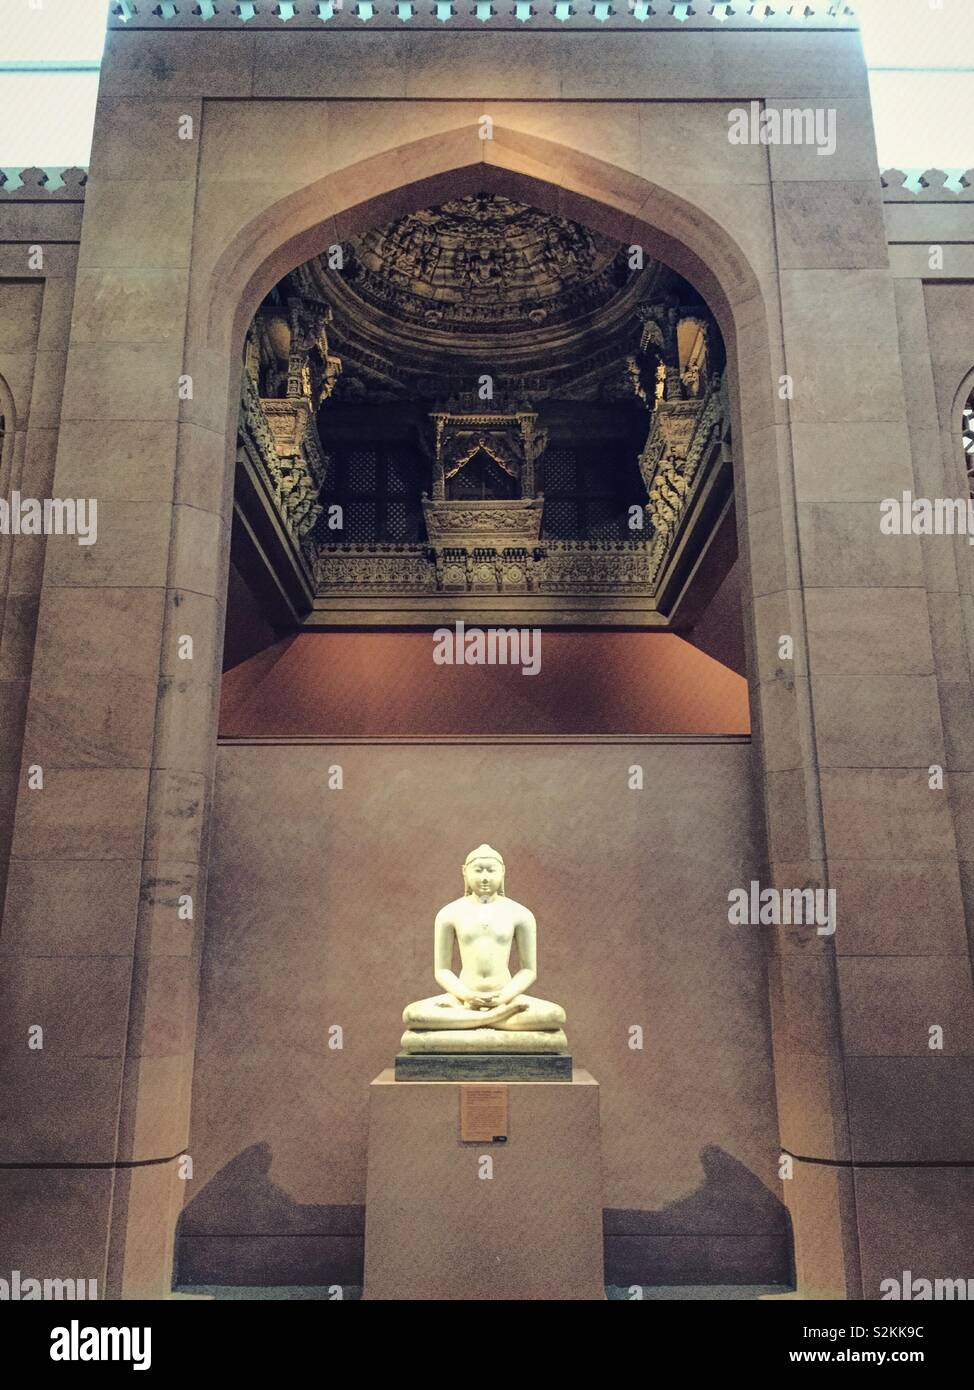 A white Buddha statue in the Asian Art wing of the Metropolitan Museum of Art, NYC, USA Stock Photo